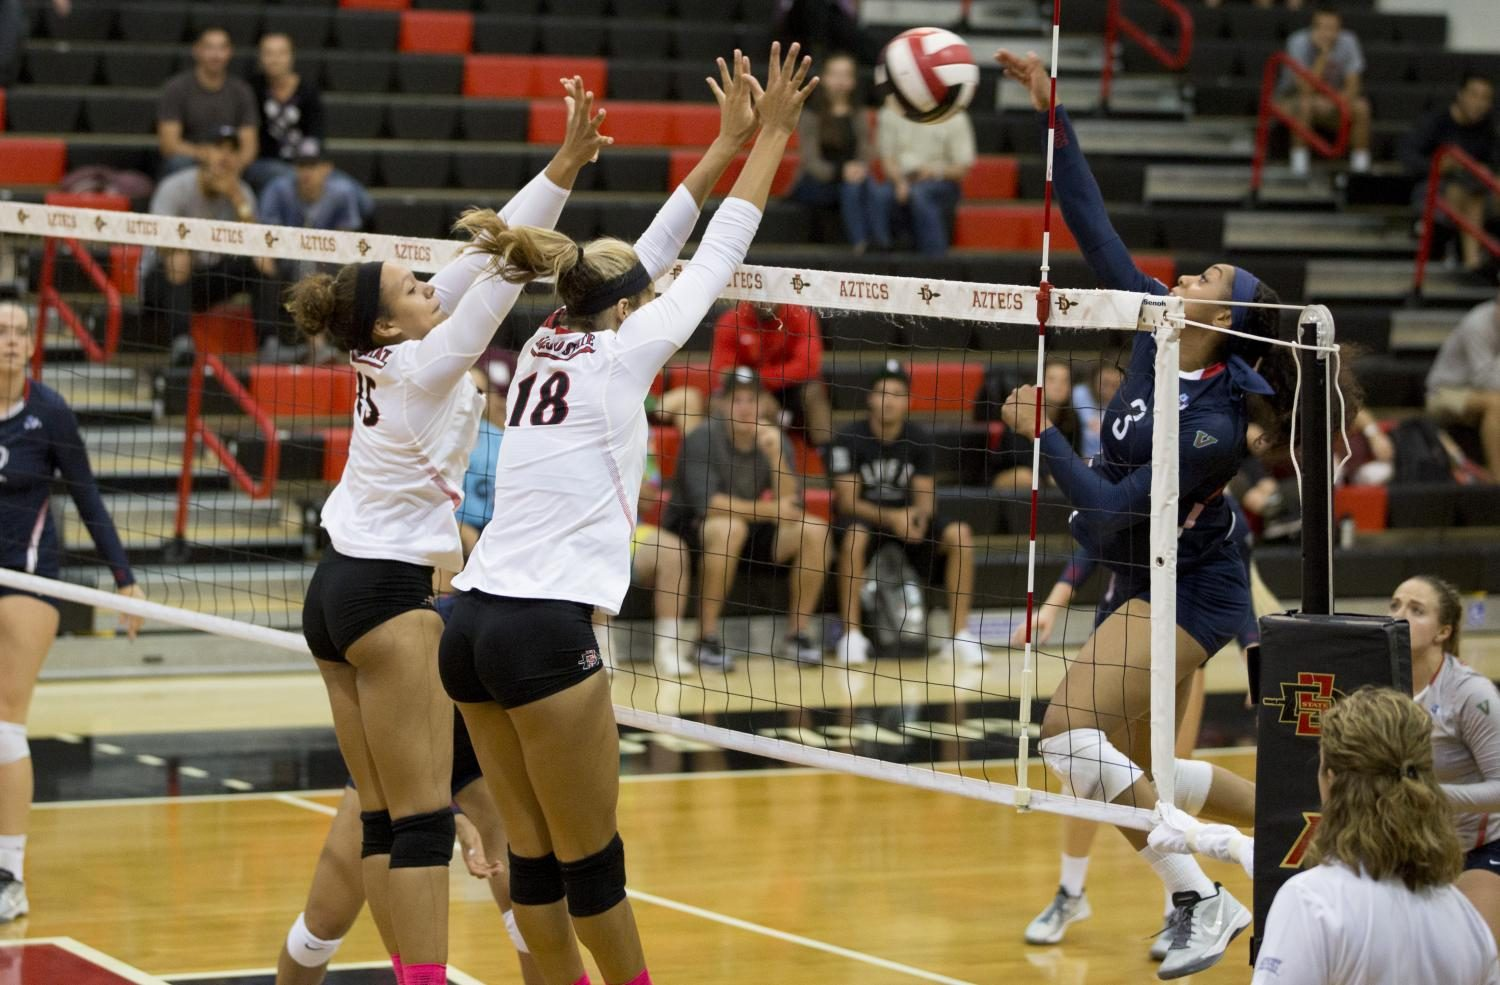 Senior+outside+hitter+Alexis+Cage+%2818%29+and+junior+middle+blocker+Deja+Harris+%2815%29+go+up+for+blocks+during+a+match+in+2016.